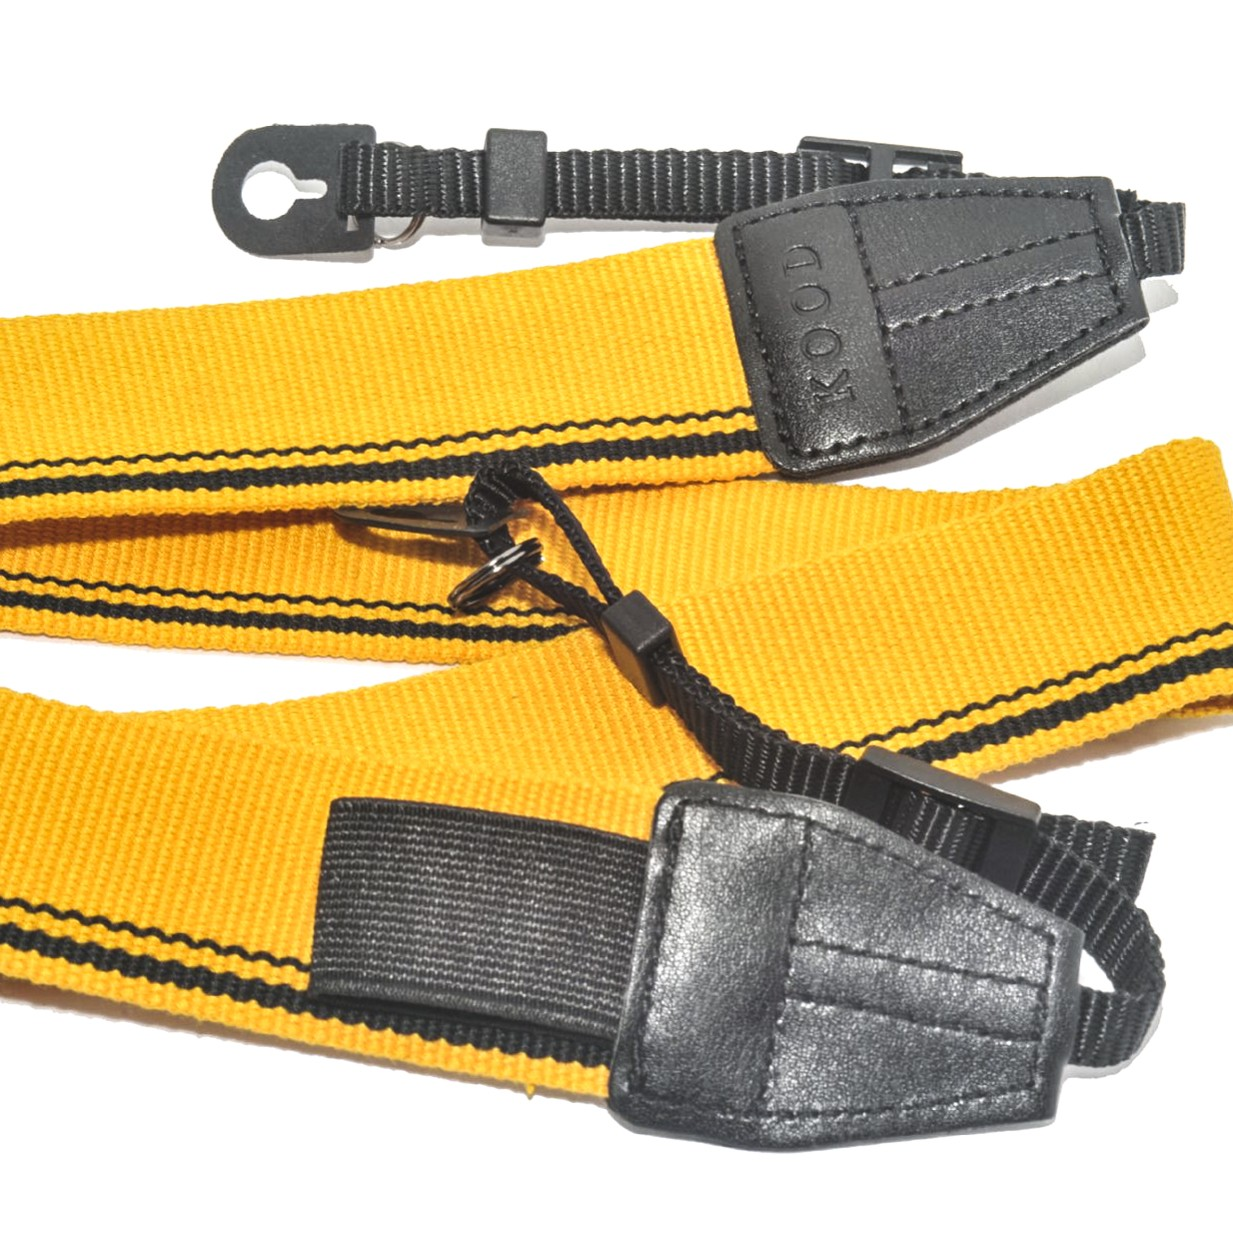 Kood High Quality Retro Style DSLR Camera Neck / Shoulder Strap Yellow & Black